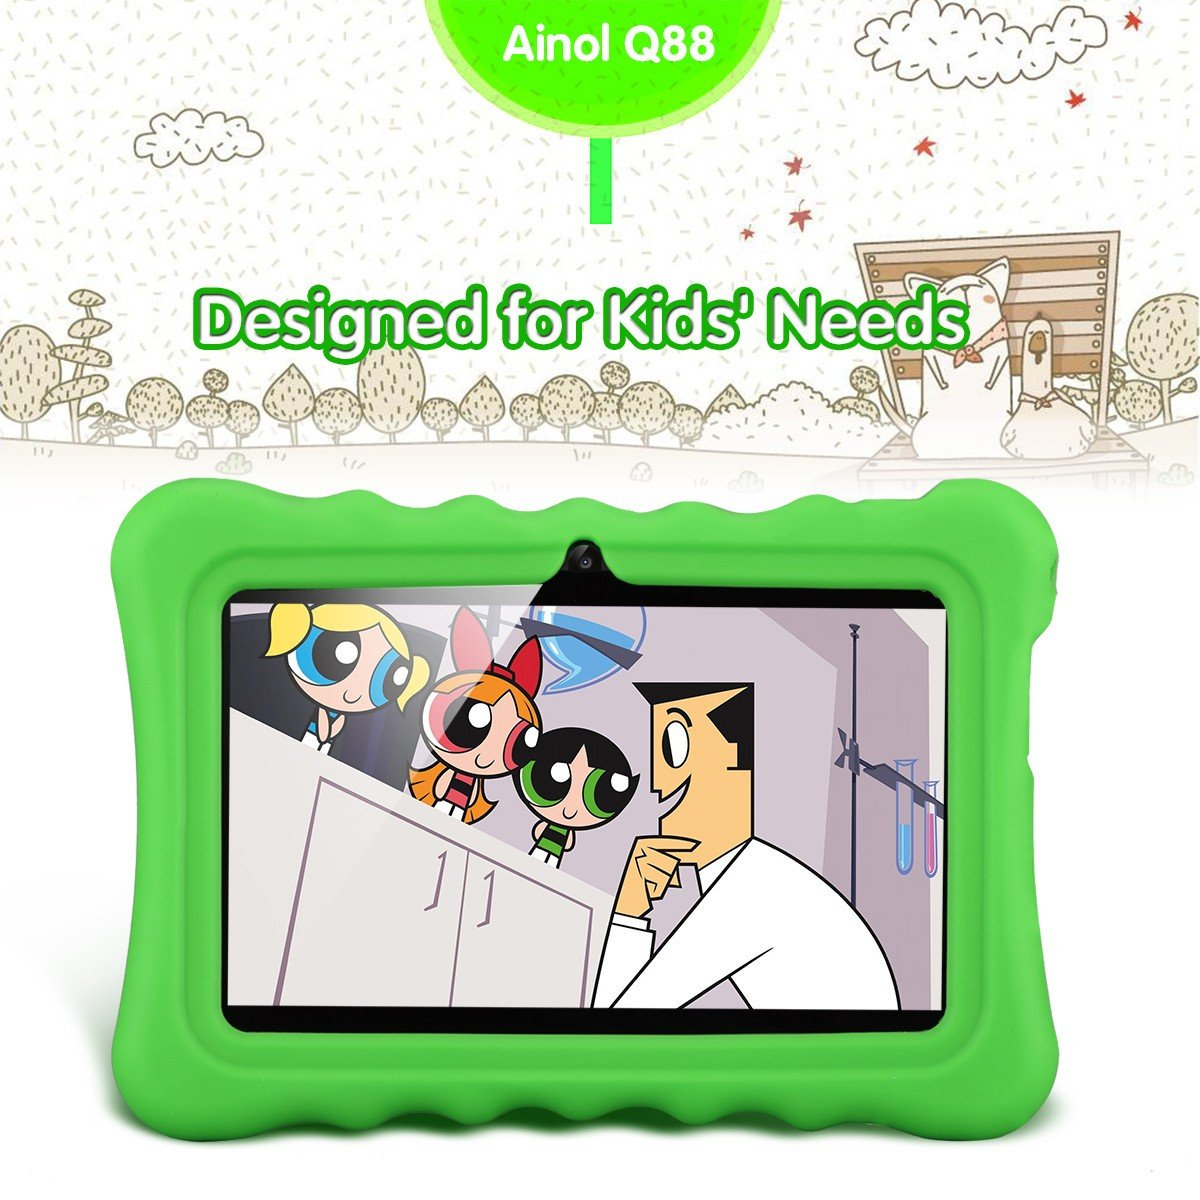 Ainol Q88 7 inch Eye-Protection Tablet with Adult Mode and Child Mode Android 8GB Education Tablet Gifts for Kids Sicicone Case Dual Camera WiFi External 3G by AINOL (Image #5)